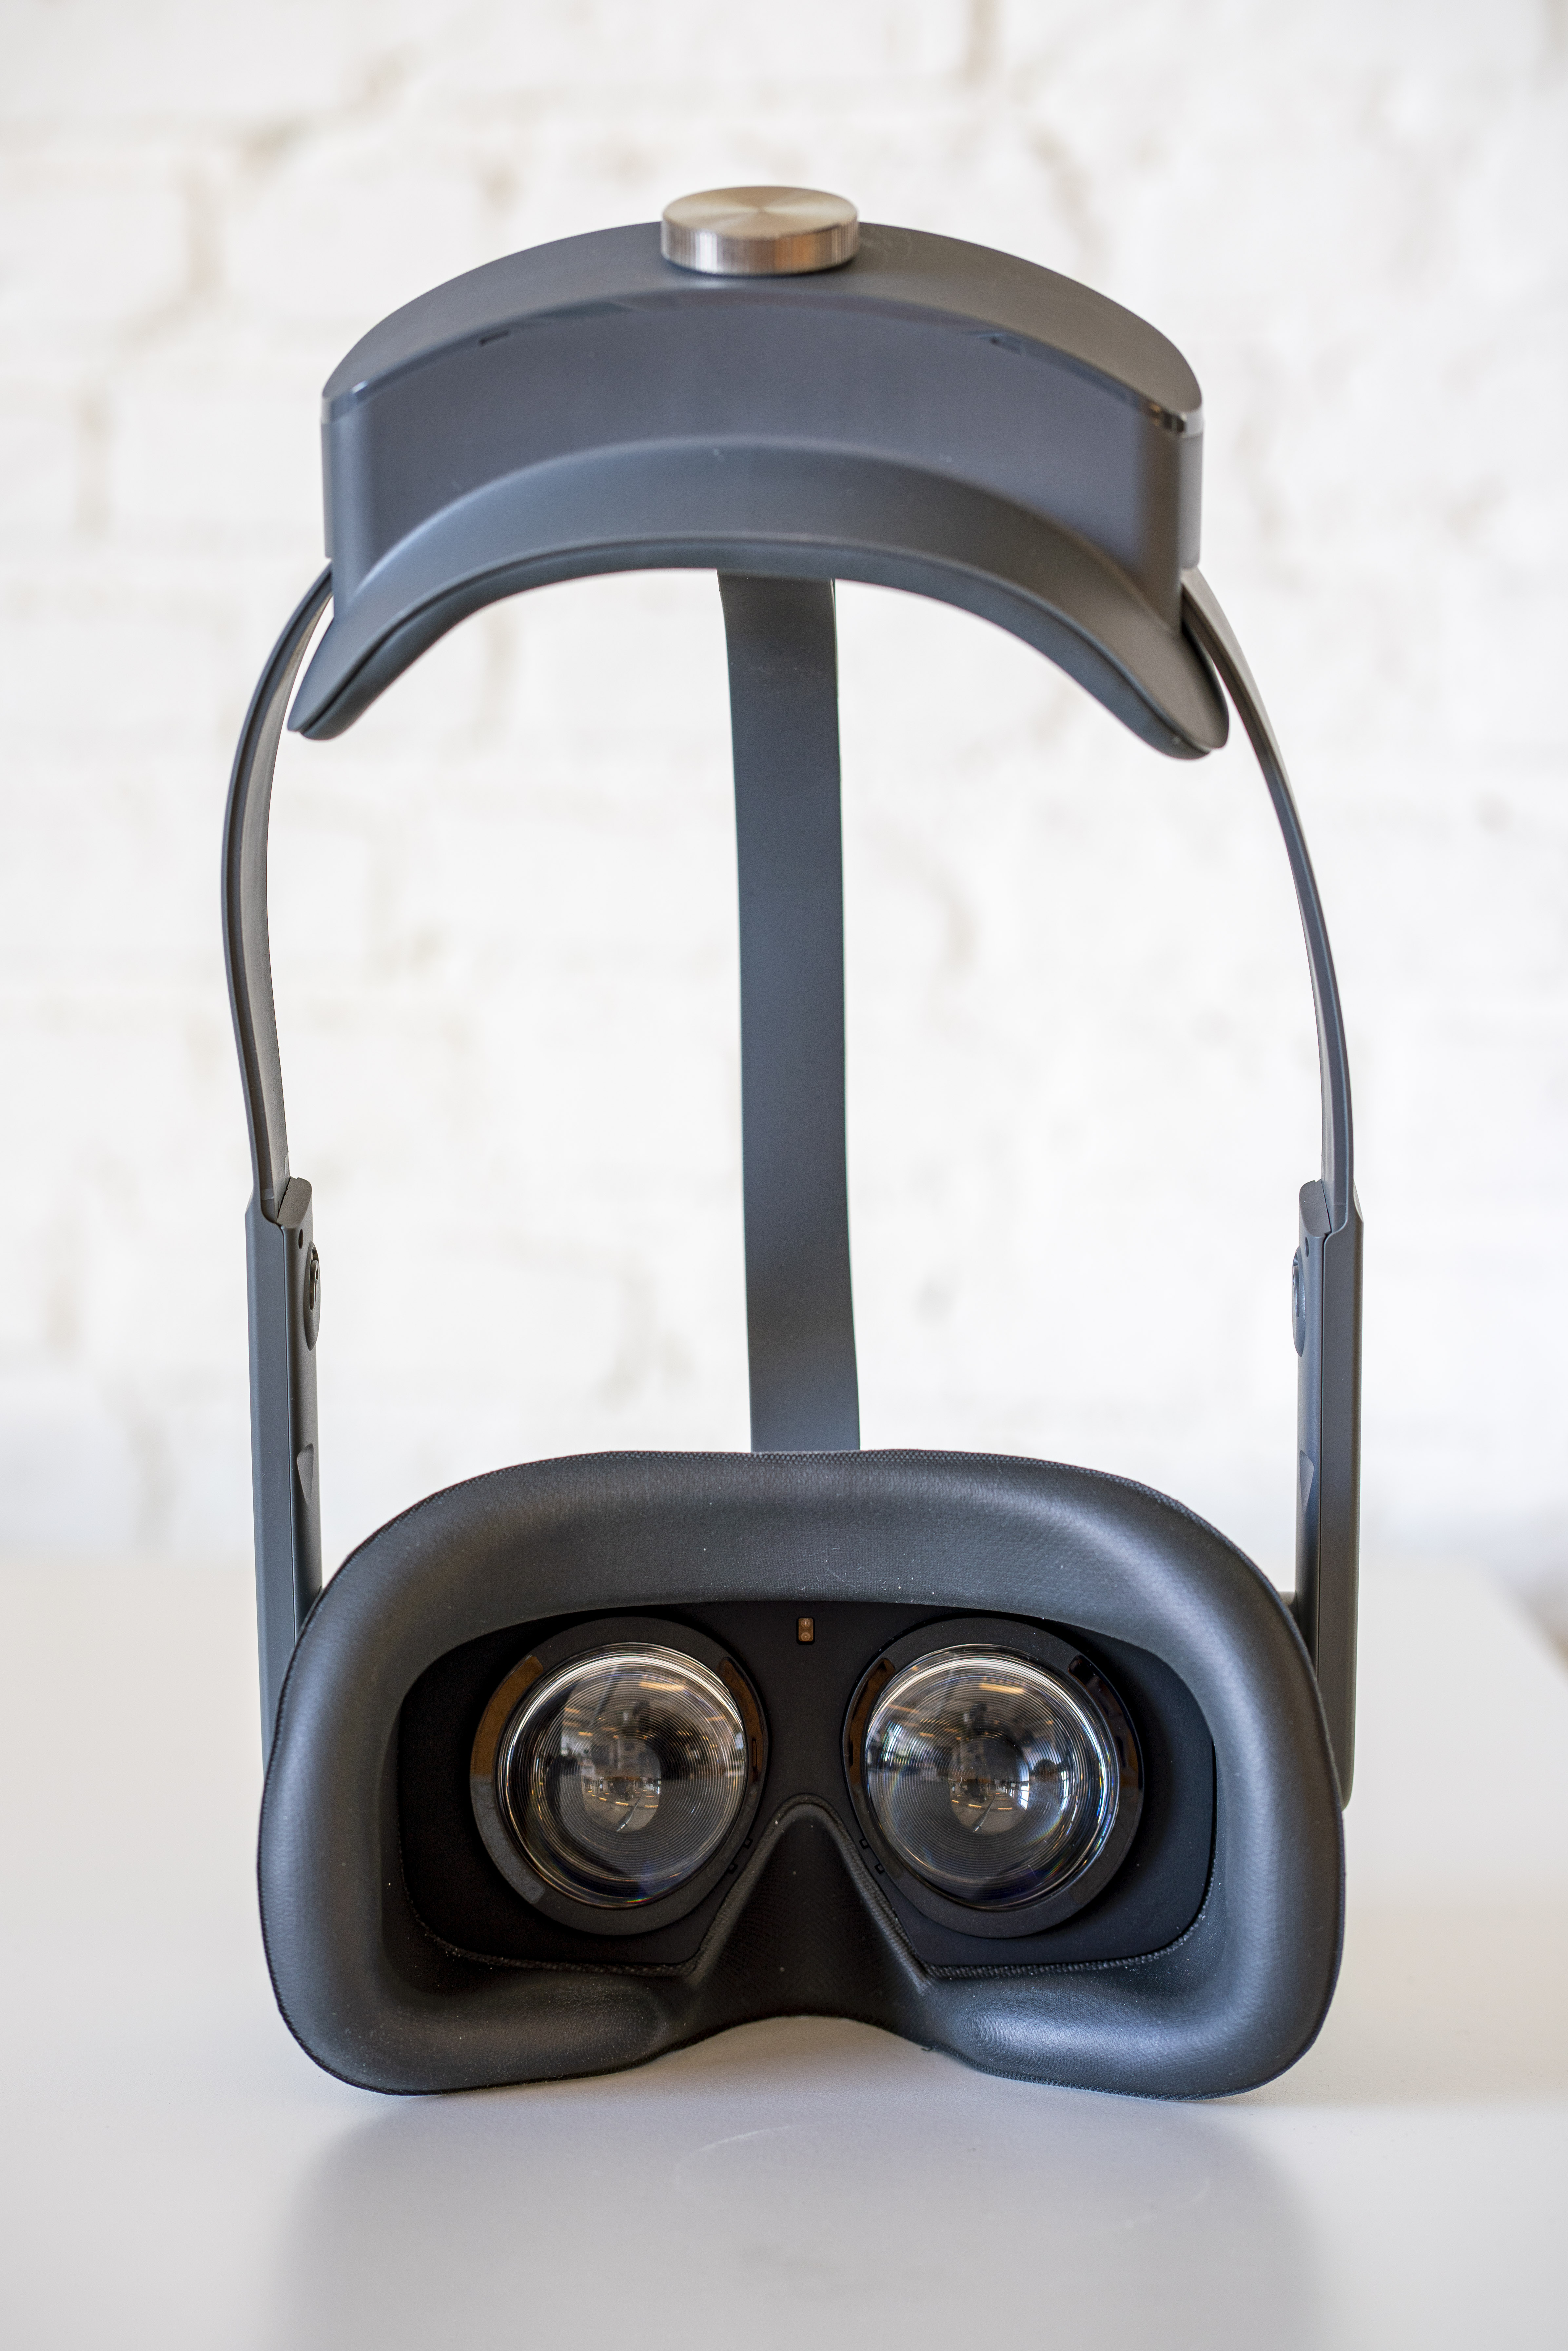 pico-review-oculus-quest-business-vr-headset-eyetracking-3